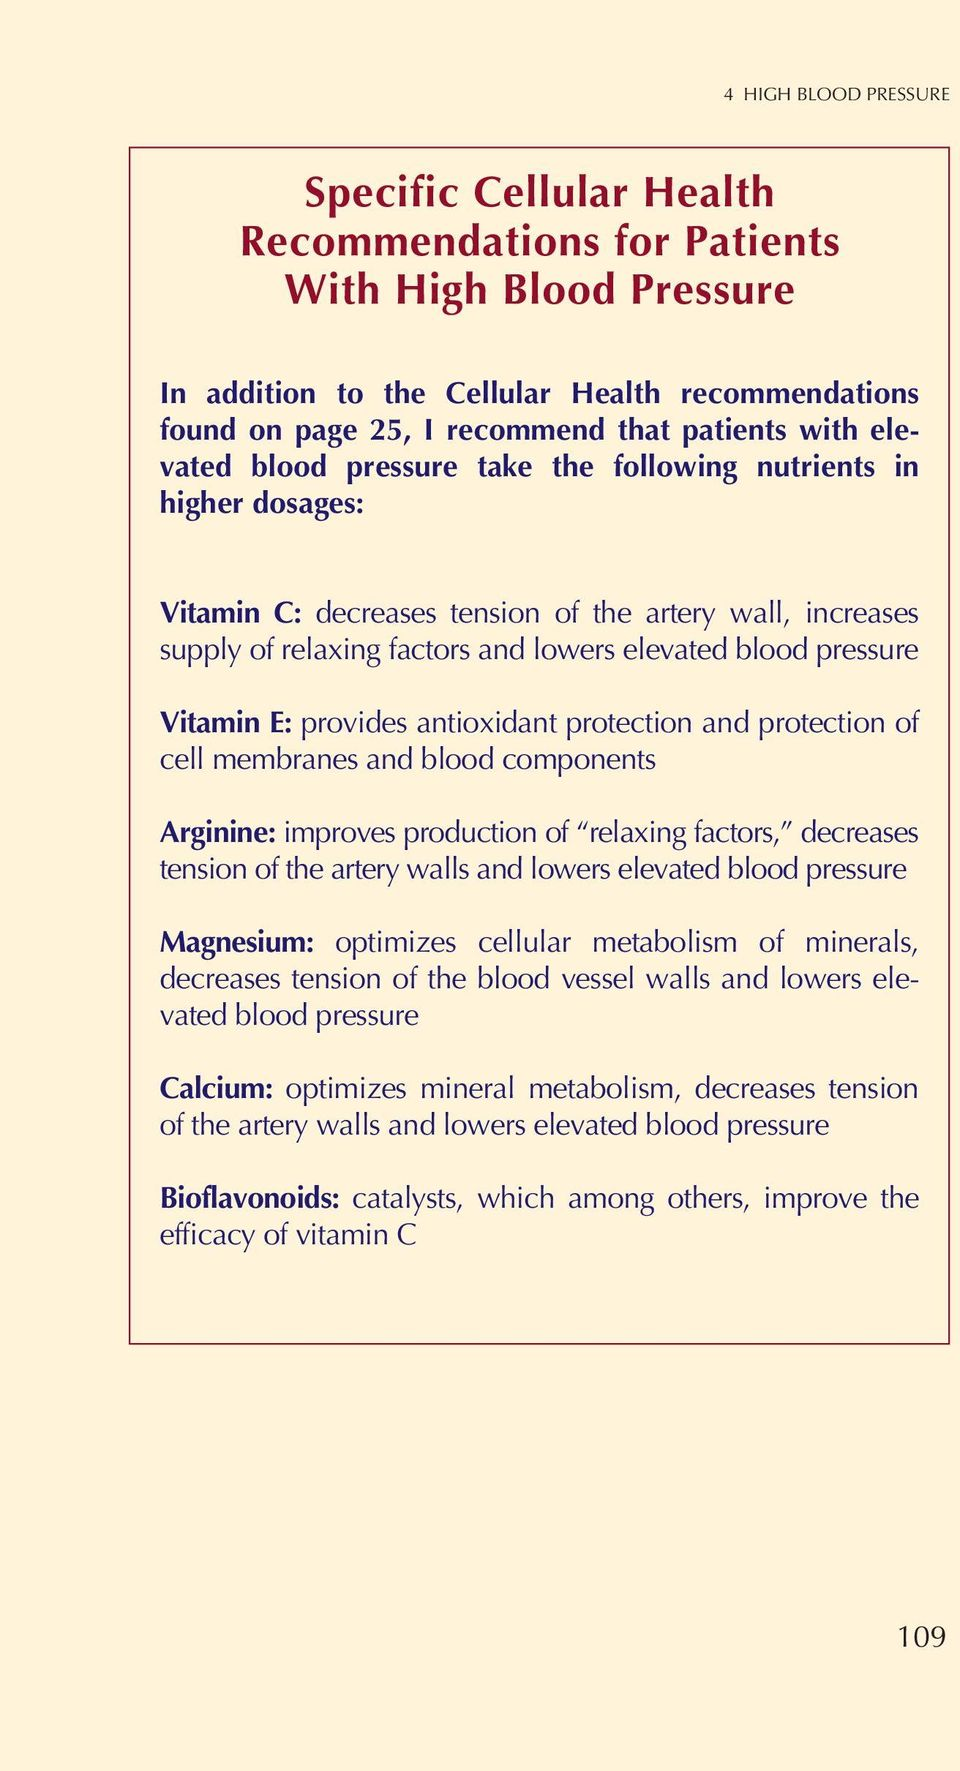 Vitamin E: provides antioxidant protection and protection of cell membranes and blood components Arginine: improves production of relaxing factors, decreases tension of the artery walls and lowers